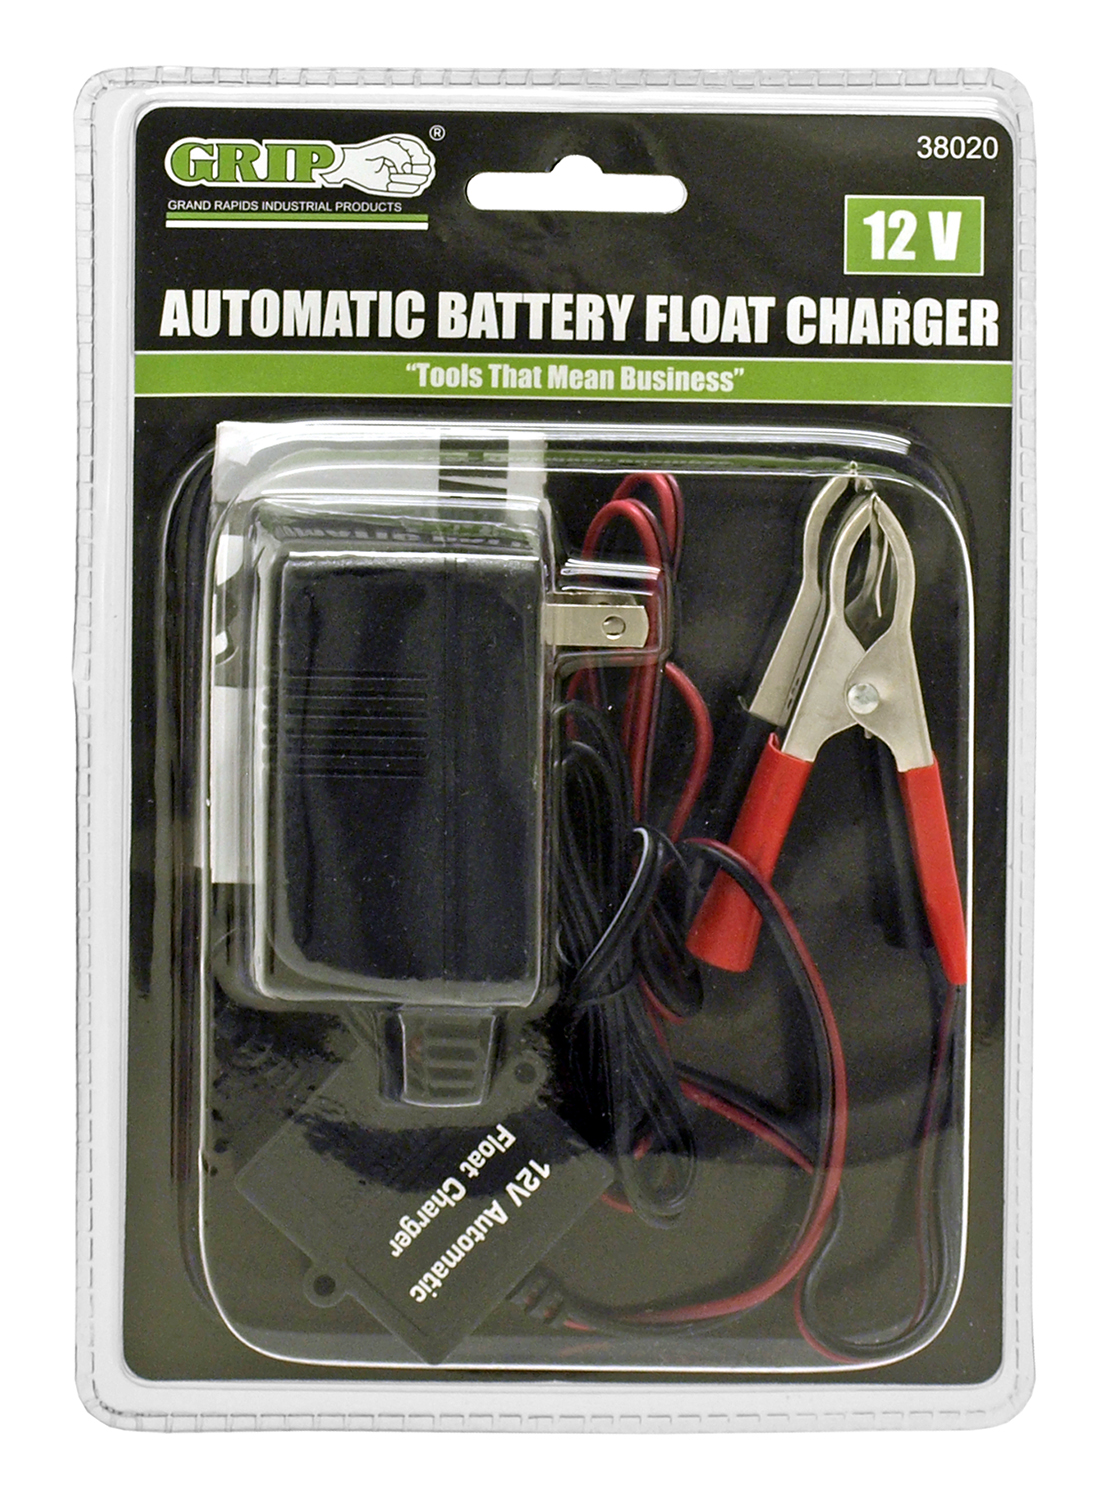 12 - Volt Automatic Battery Float Charger - Grip